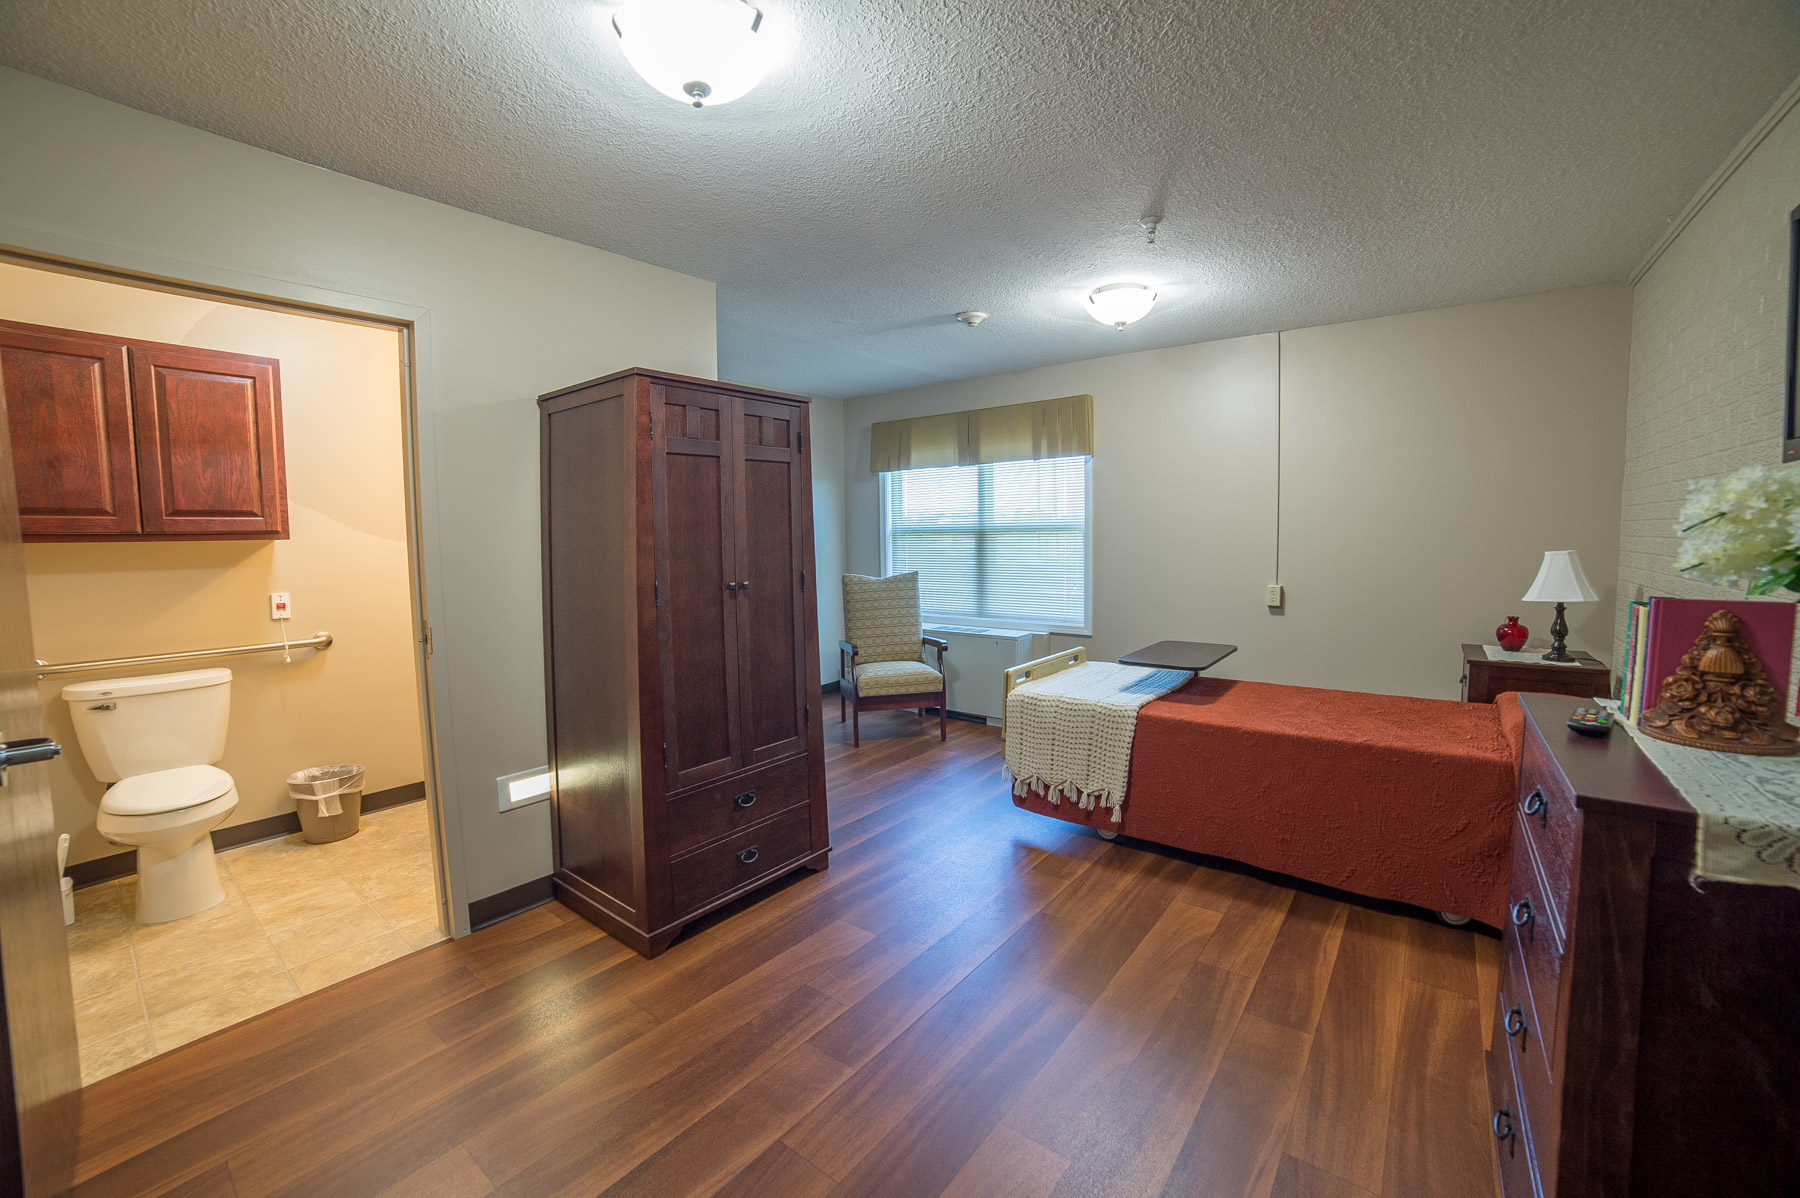 Cost Of Items In Private Rooms Nursing Home